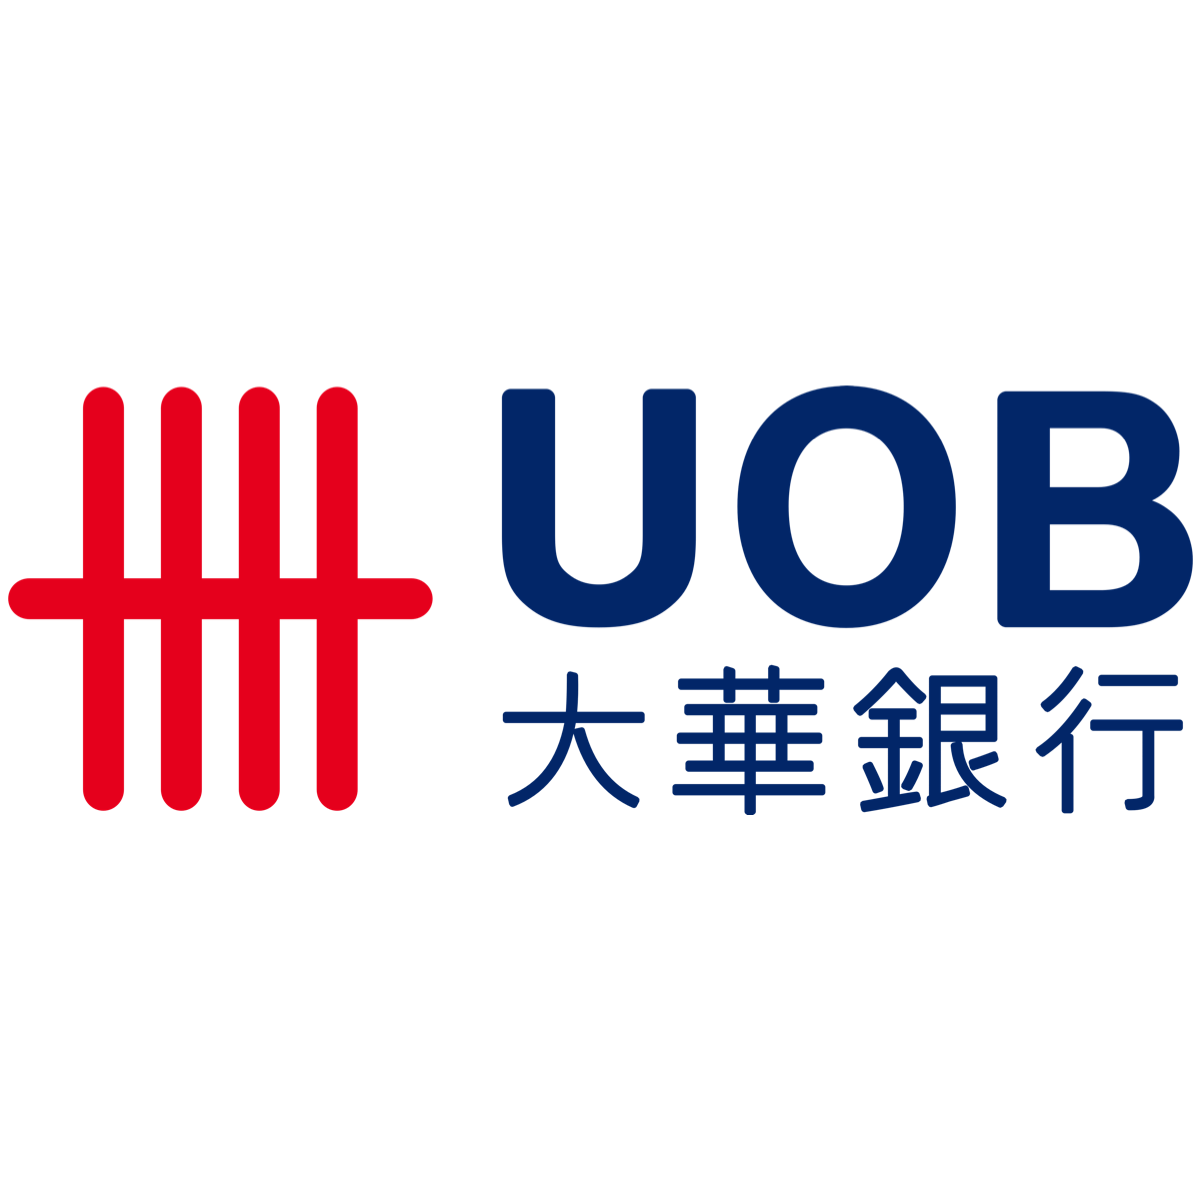 UNITED OVERSEAS BANK LTD (U11.SI)